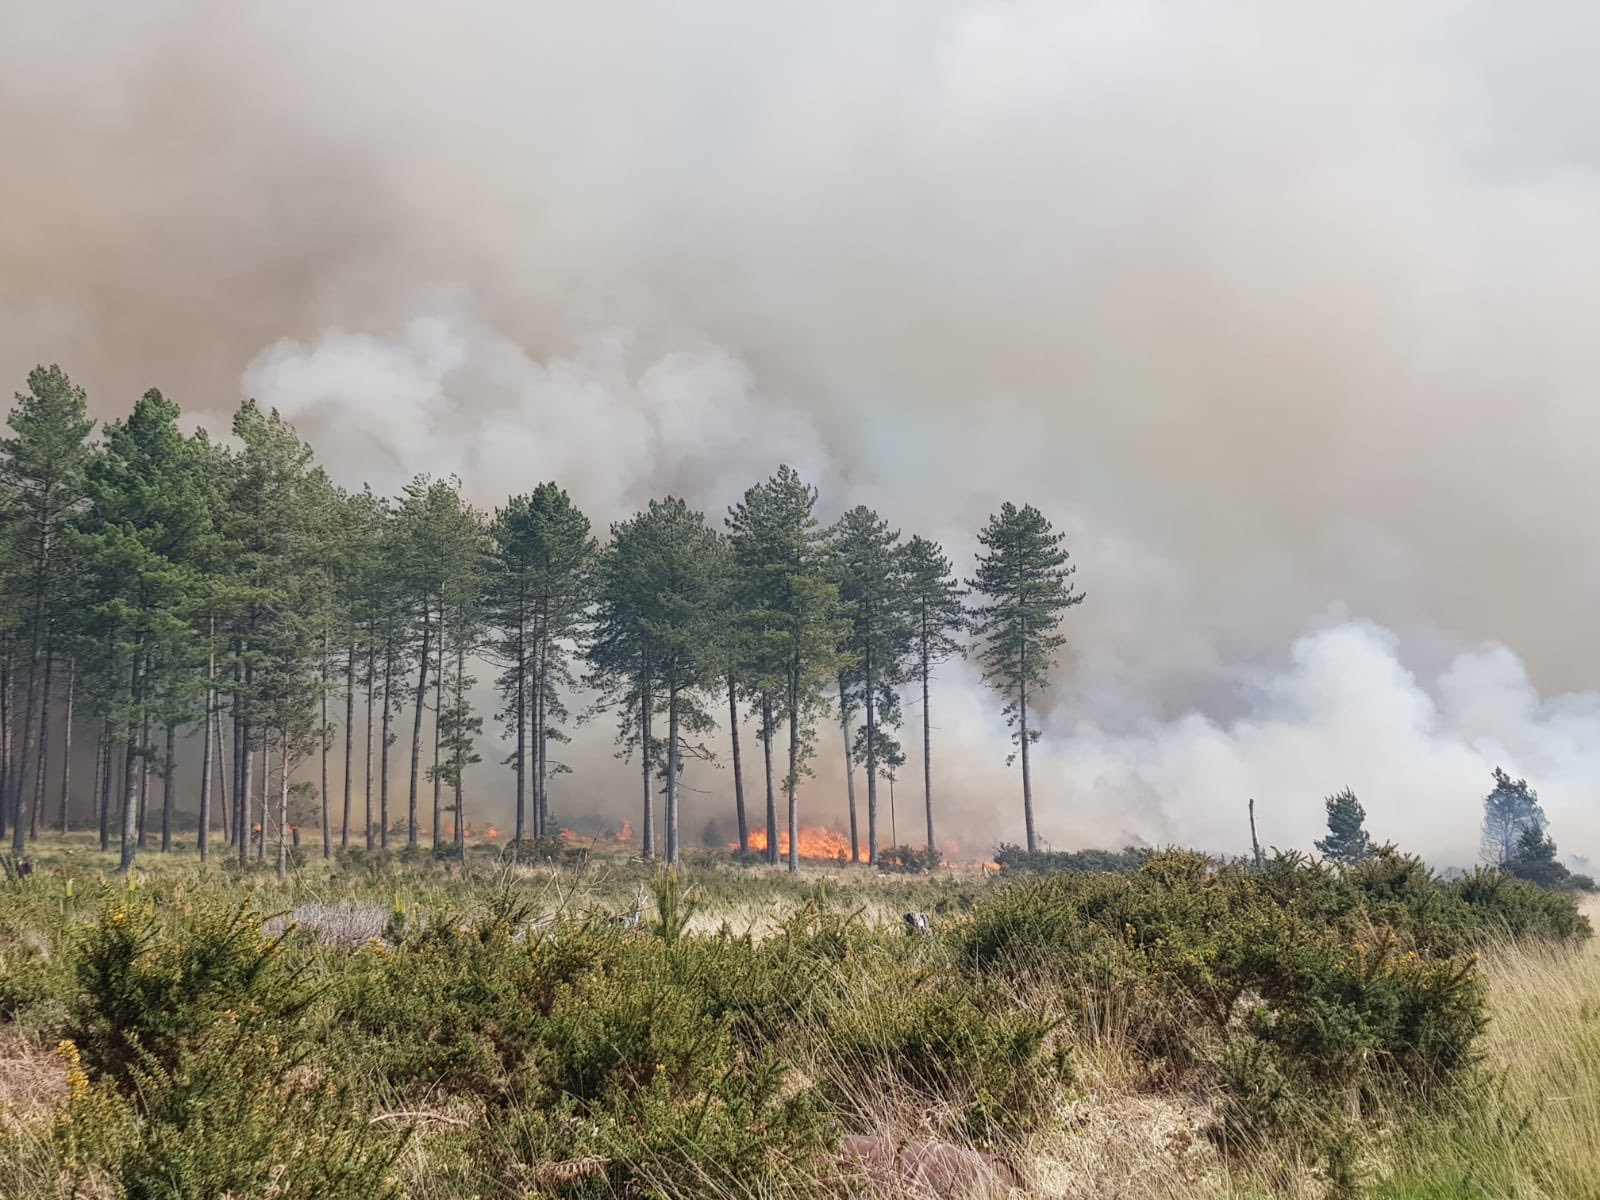 """""""The fire was in direct line with our house"""": Family evacuated due to Wareham Forest fire"""